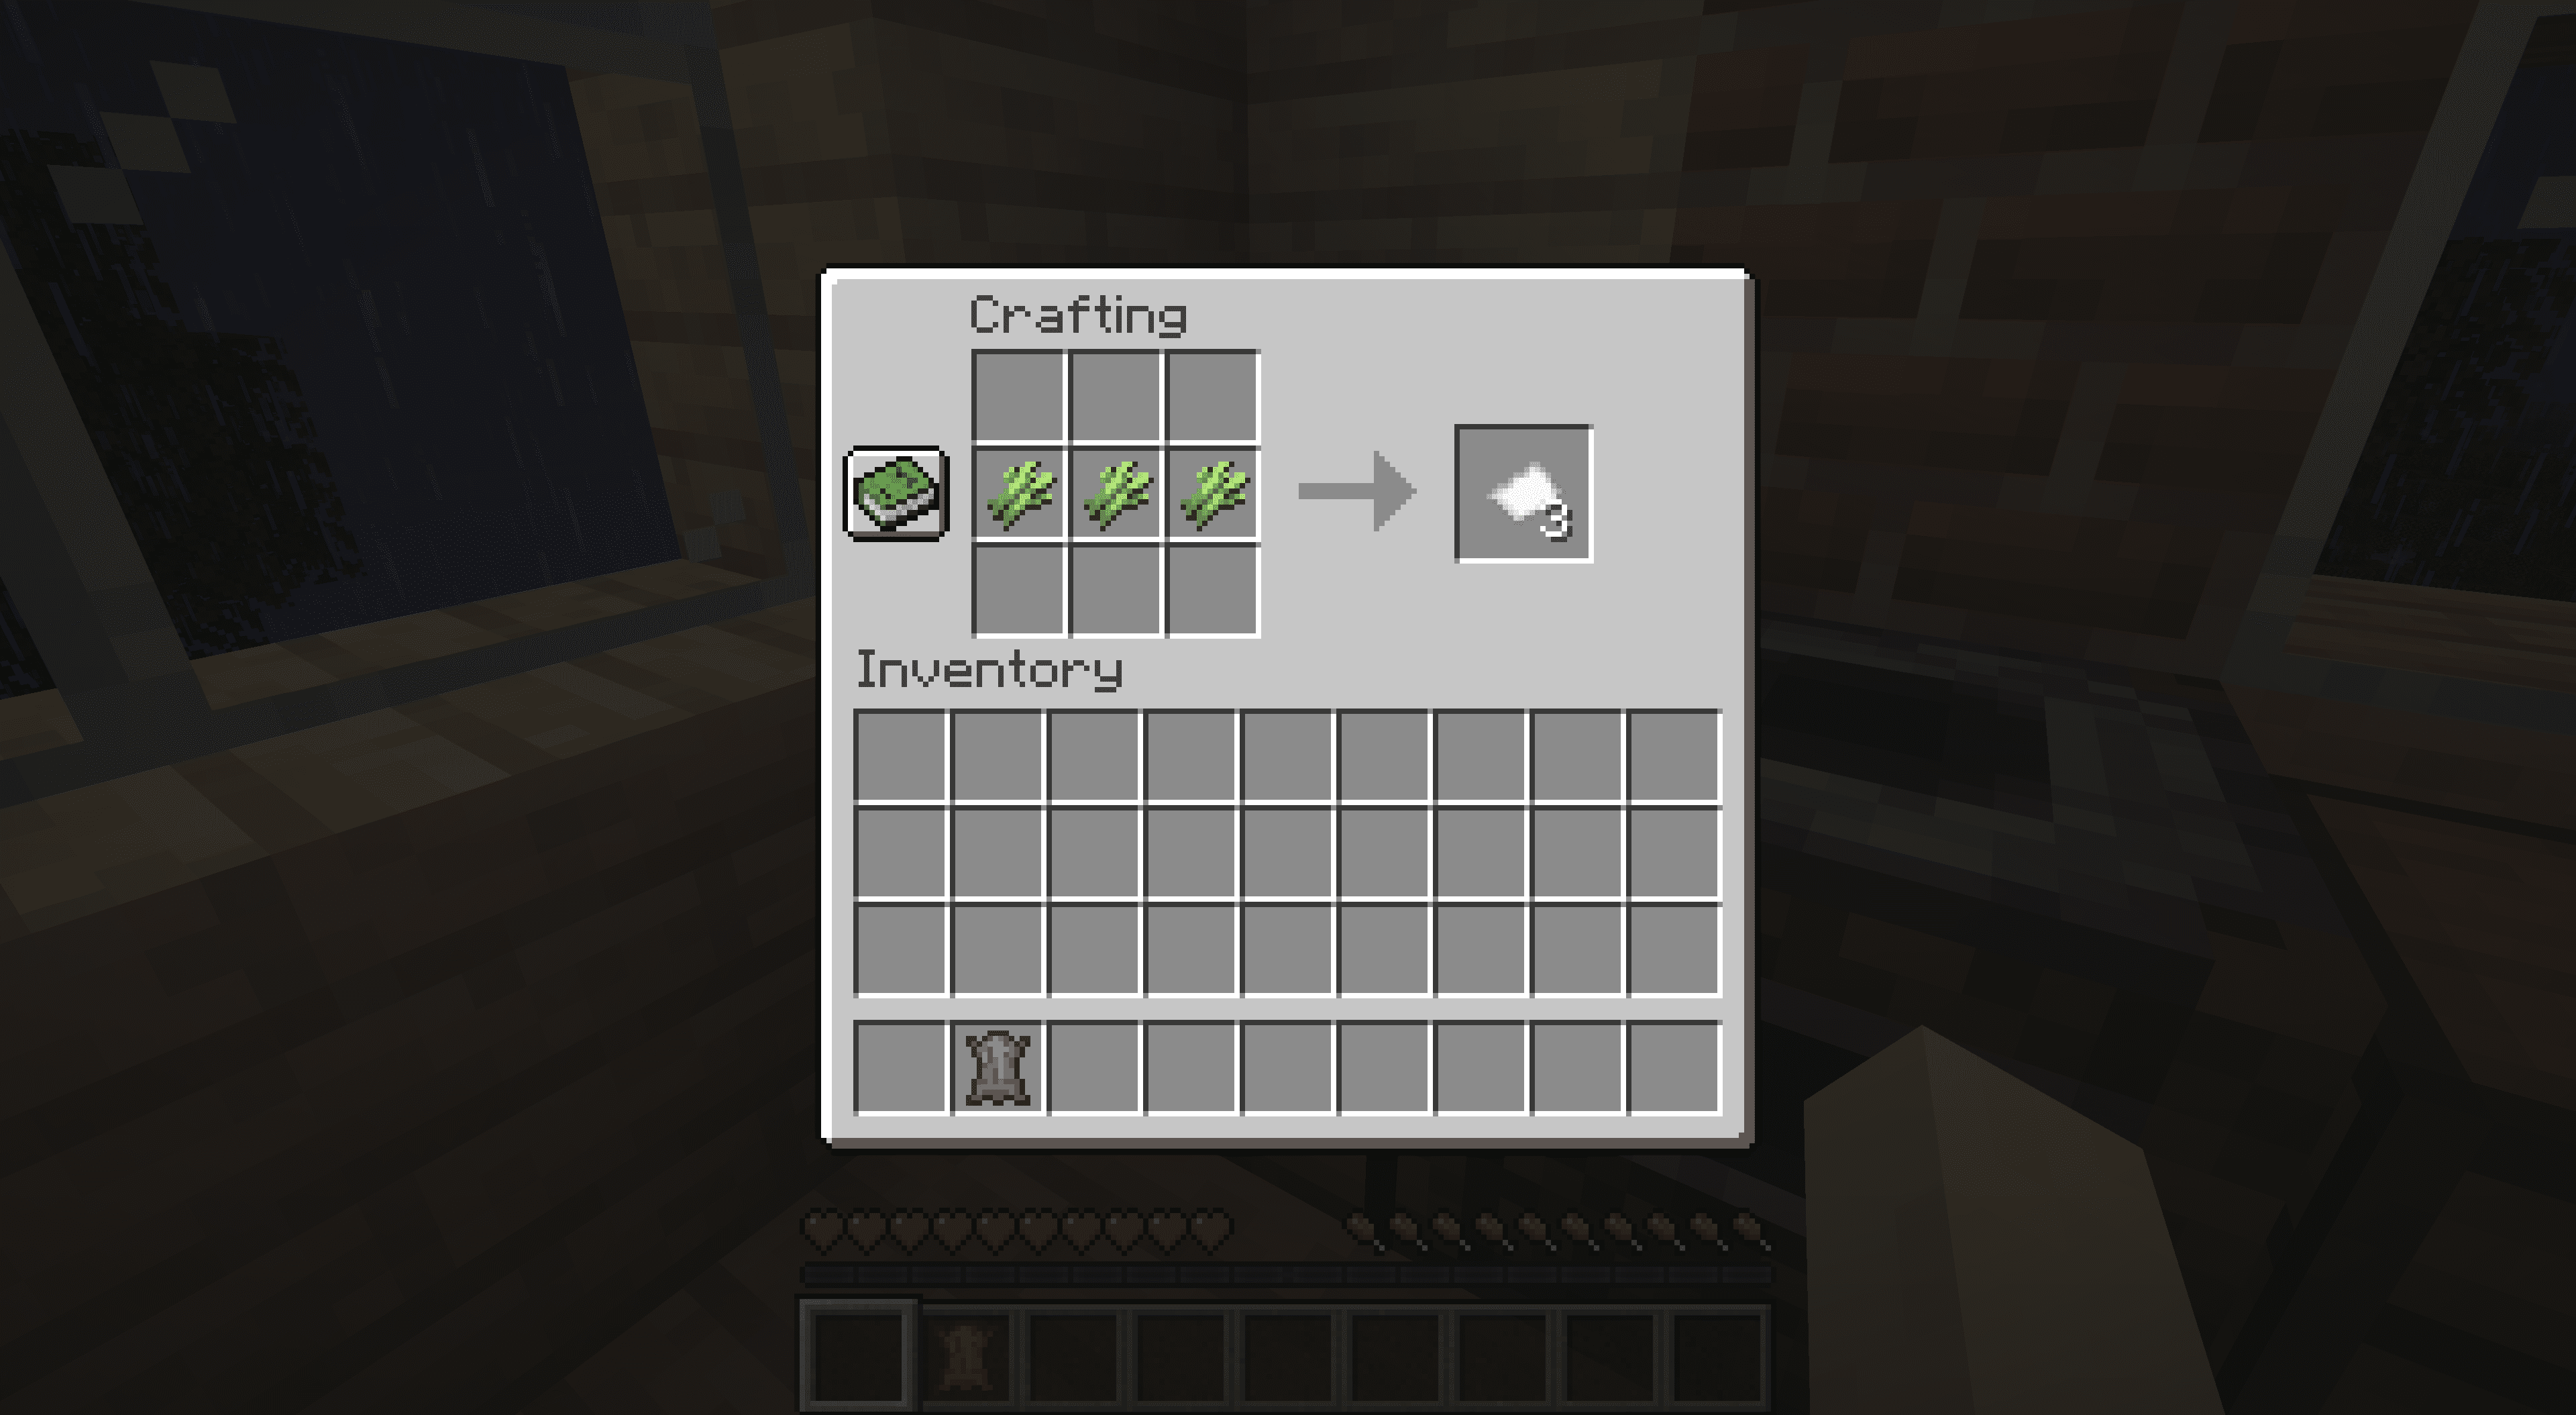 Crafting paper in Minecraft.